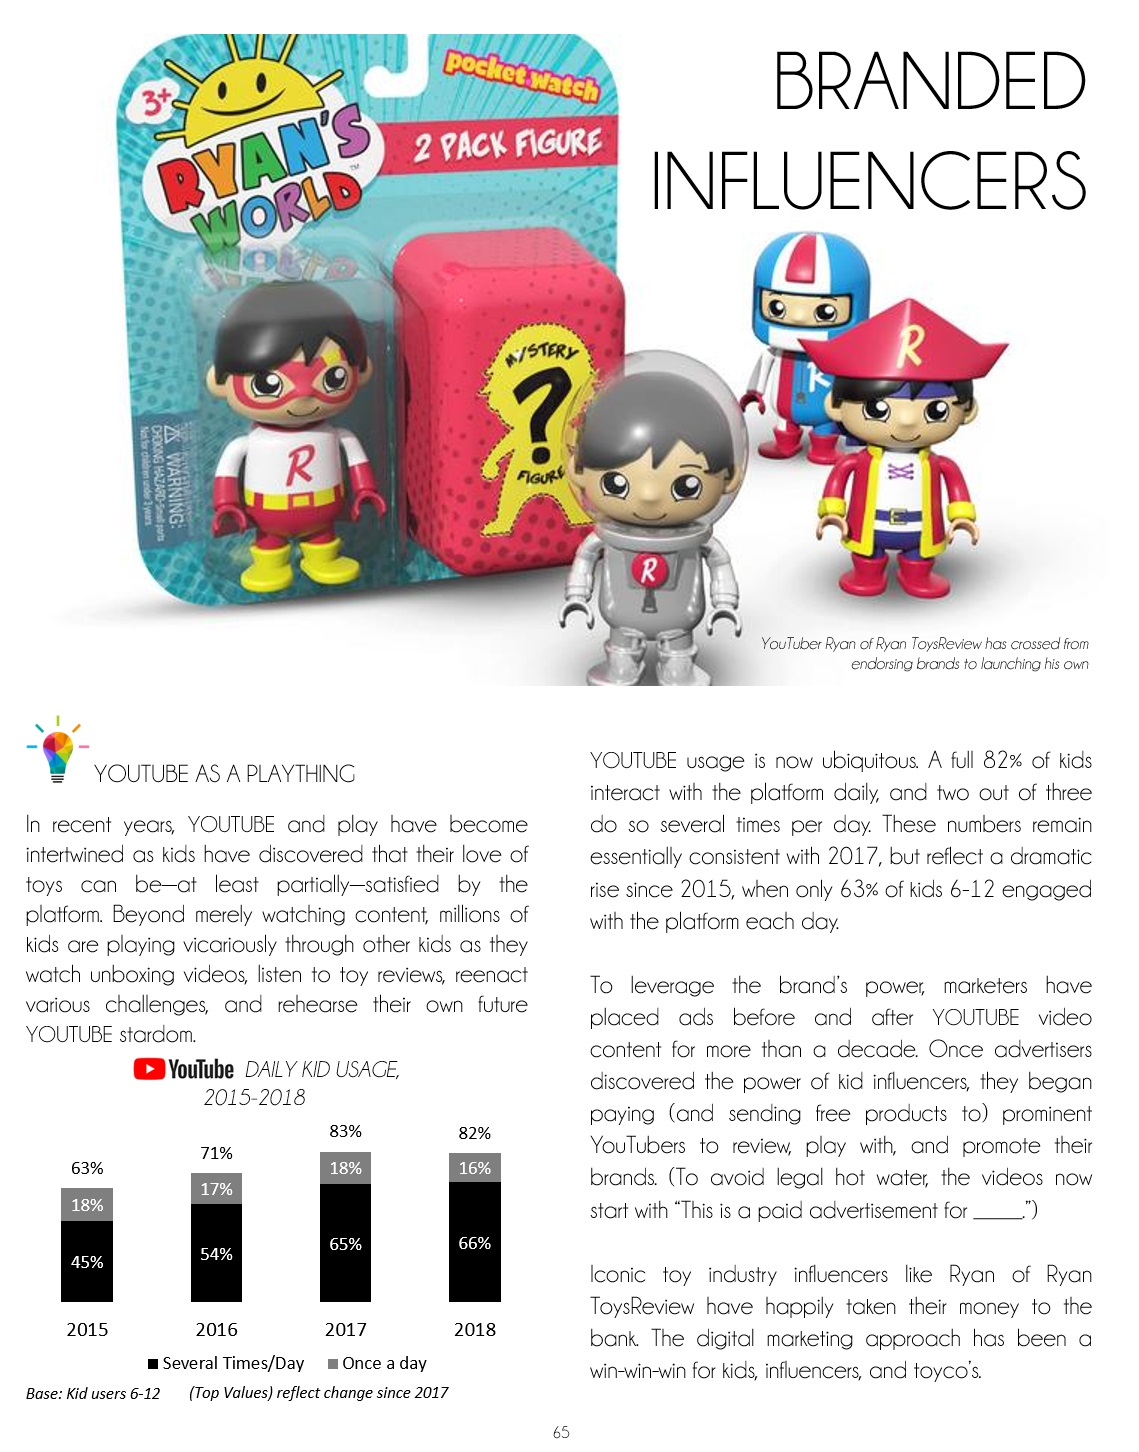 Branded Influencers Preview